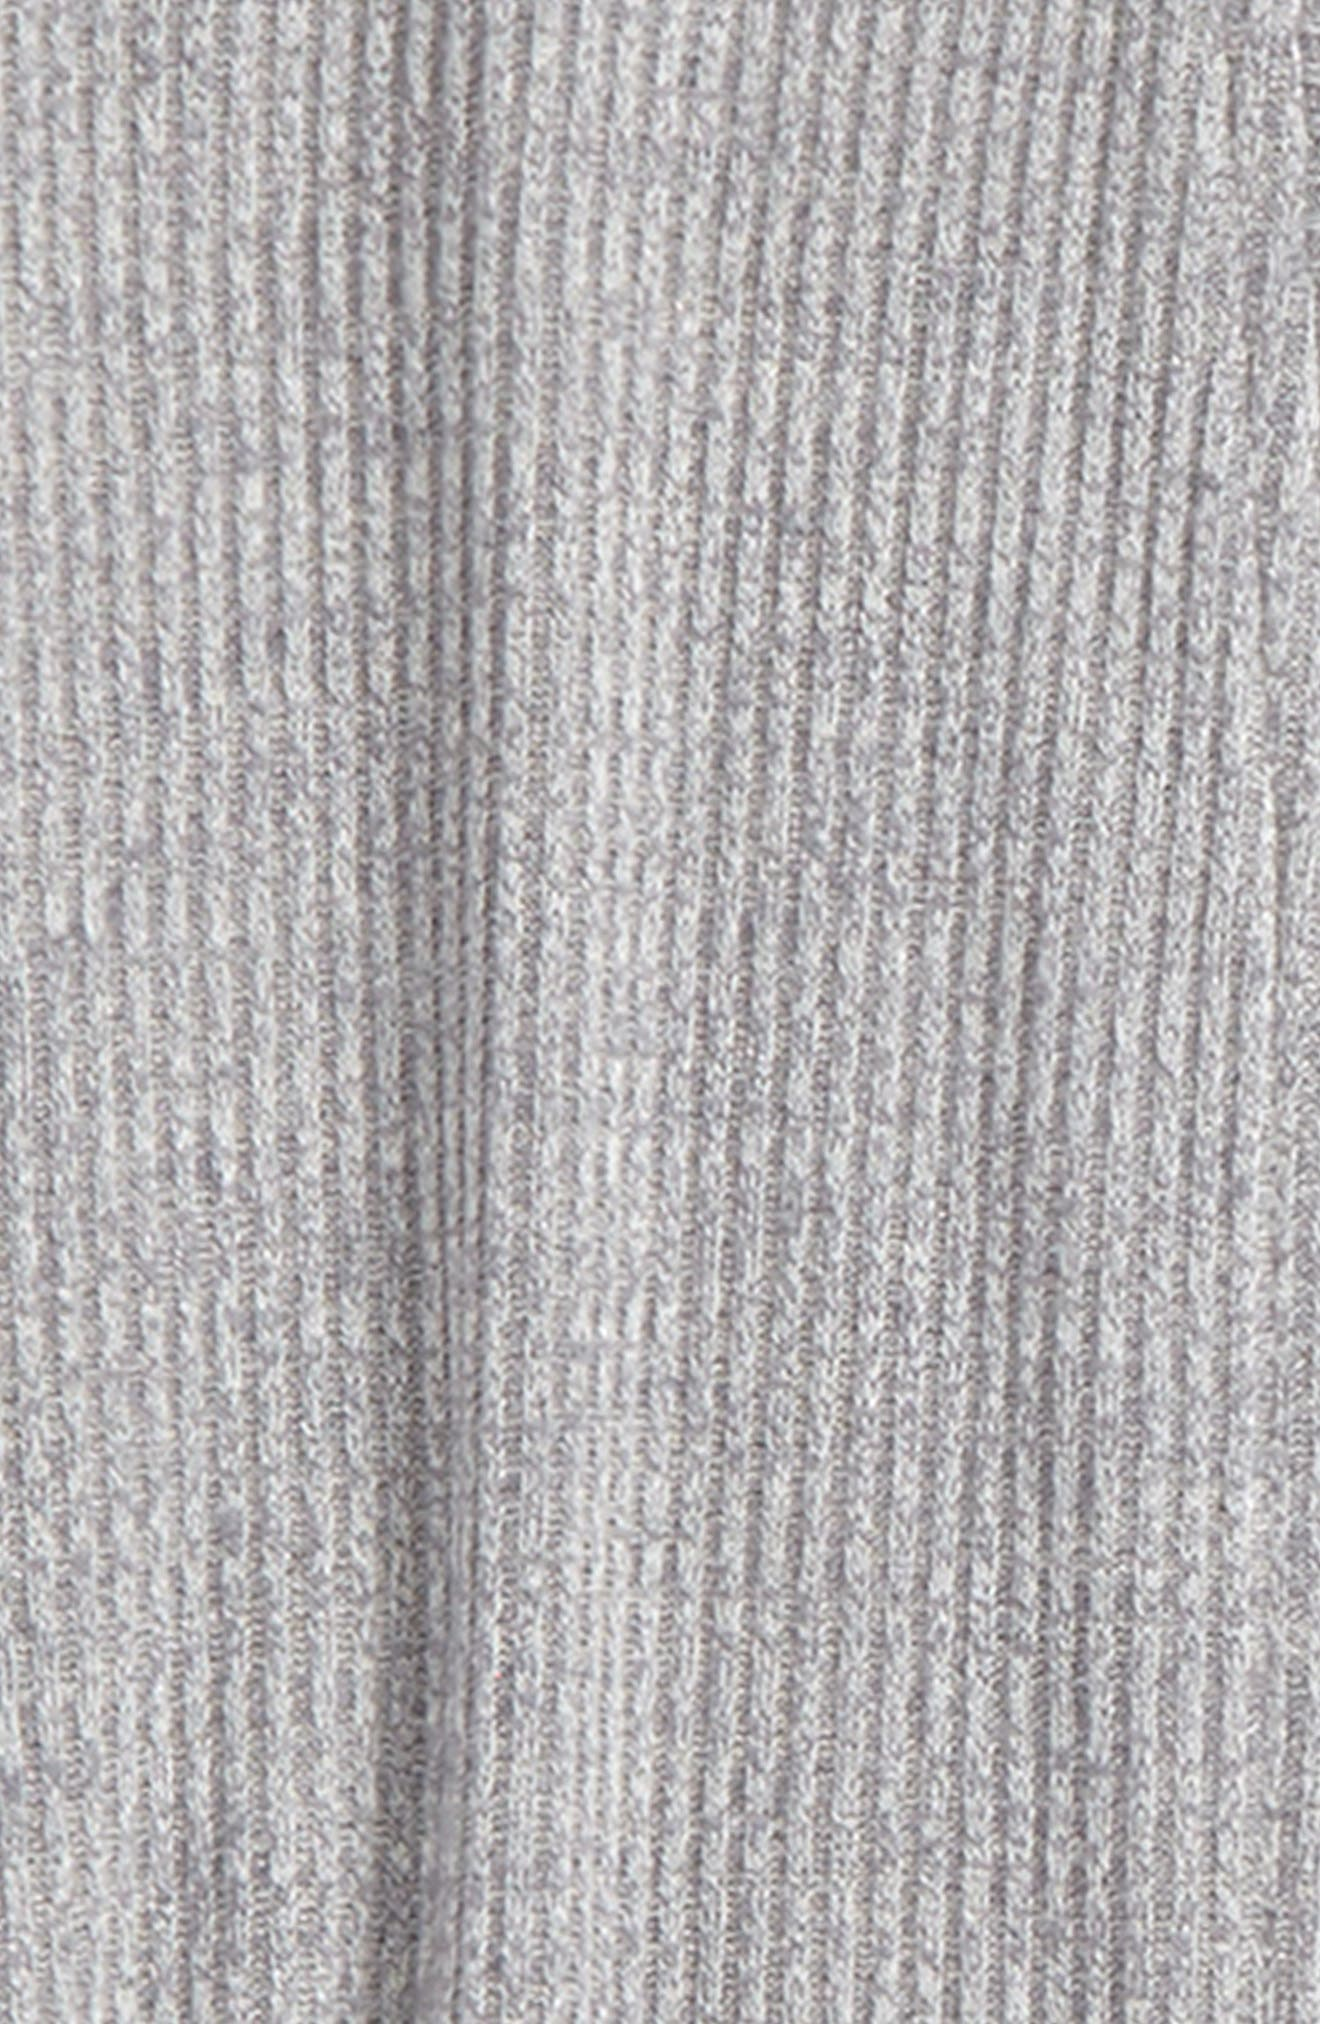 Blizzard Knit Hooded Cardigan,                             Alternate thumbnail 2, color,                             020